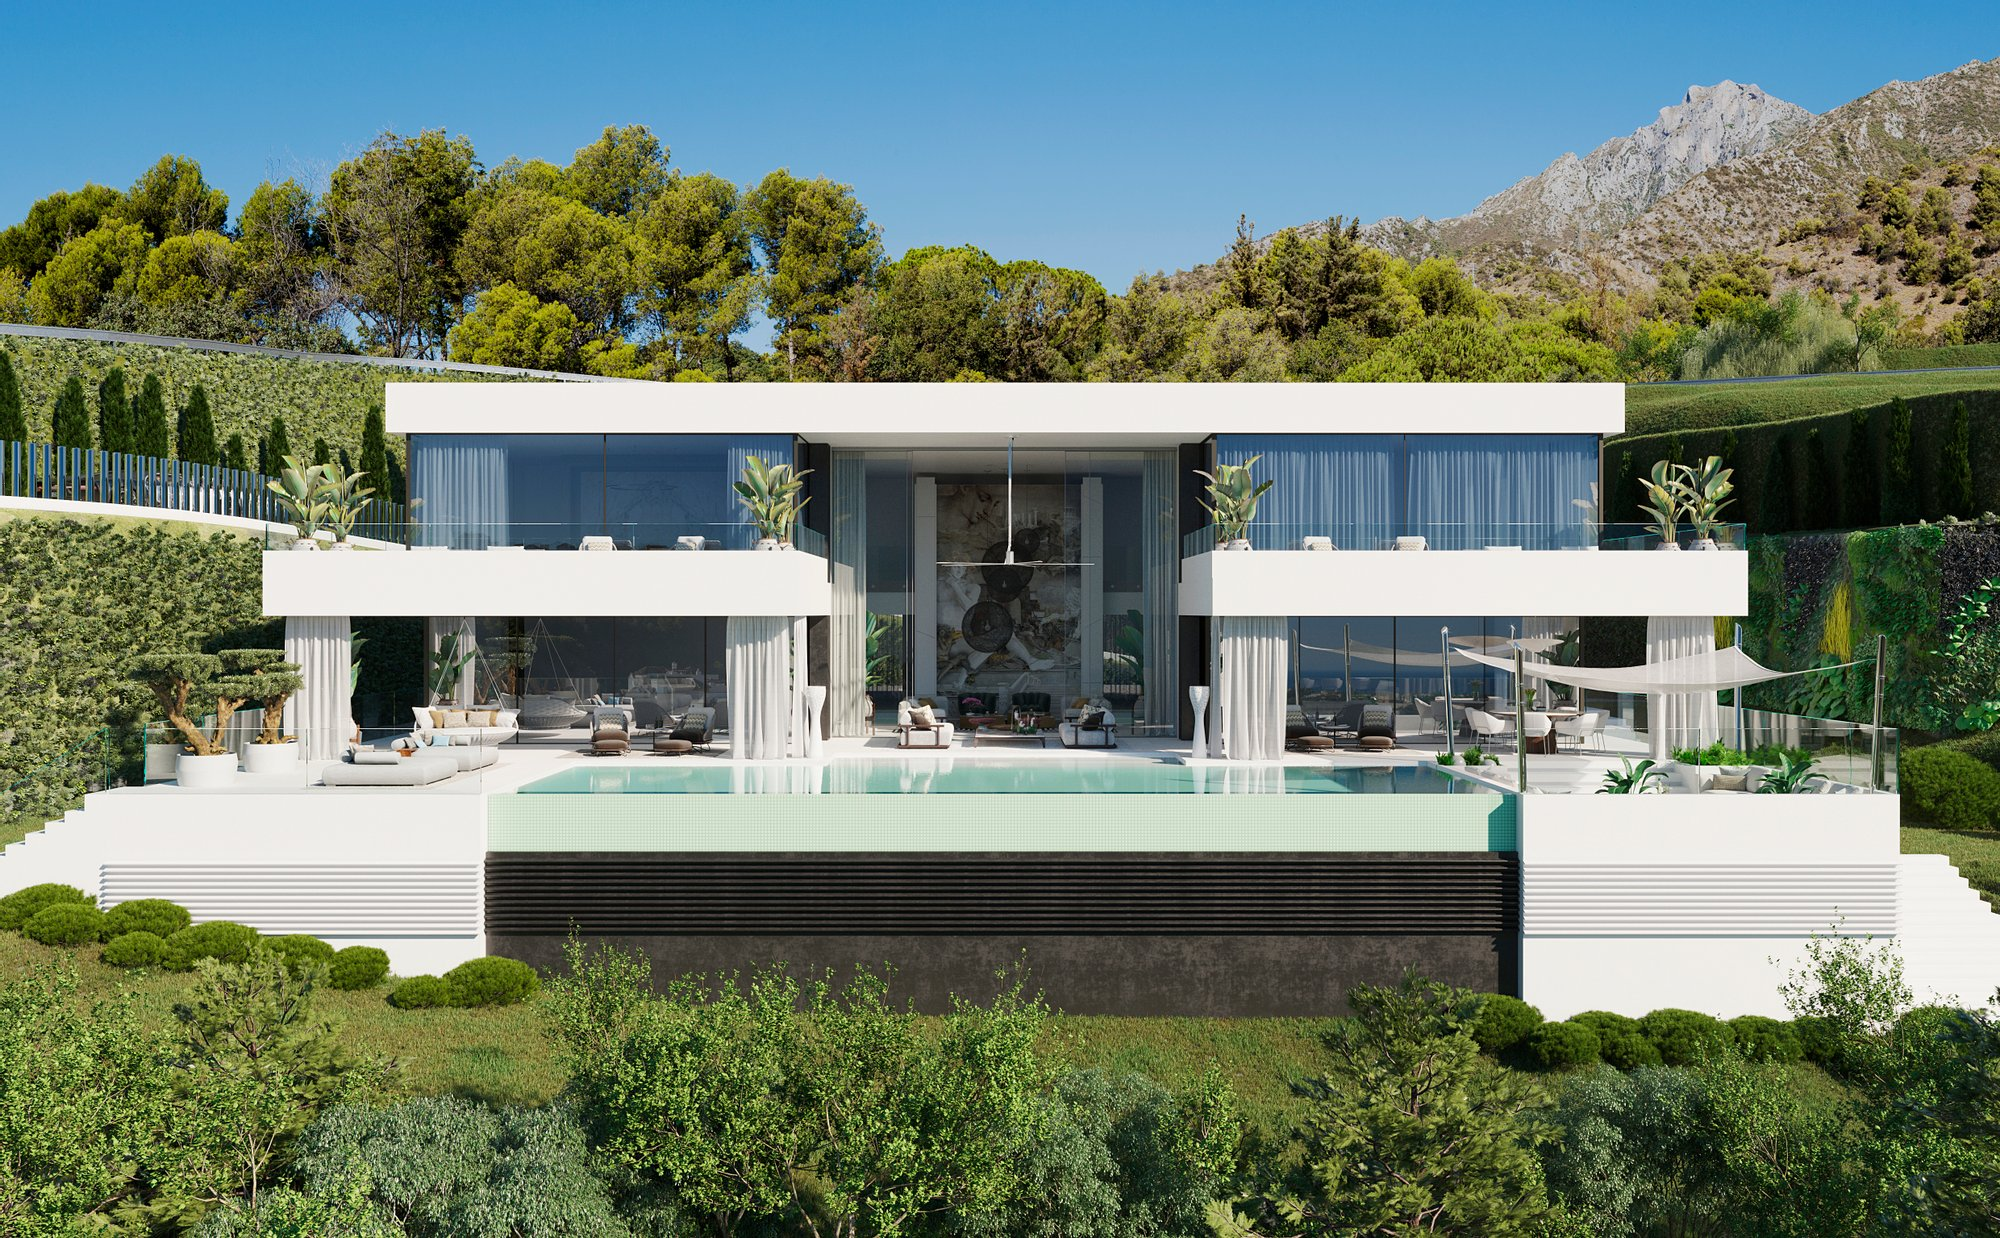 The best mansions with pools in the world for sale: top 10 listings with prices